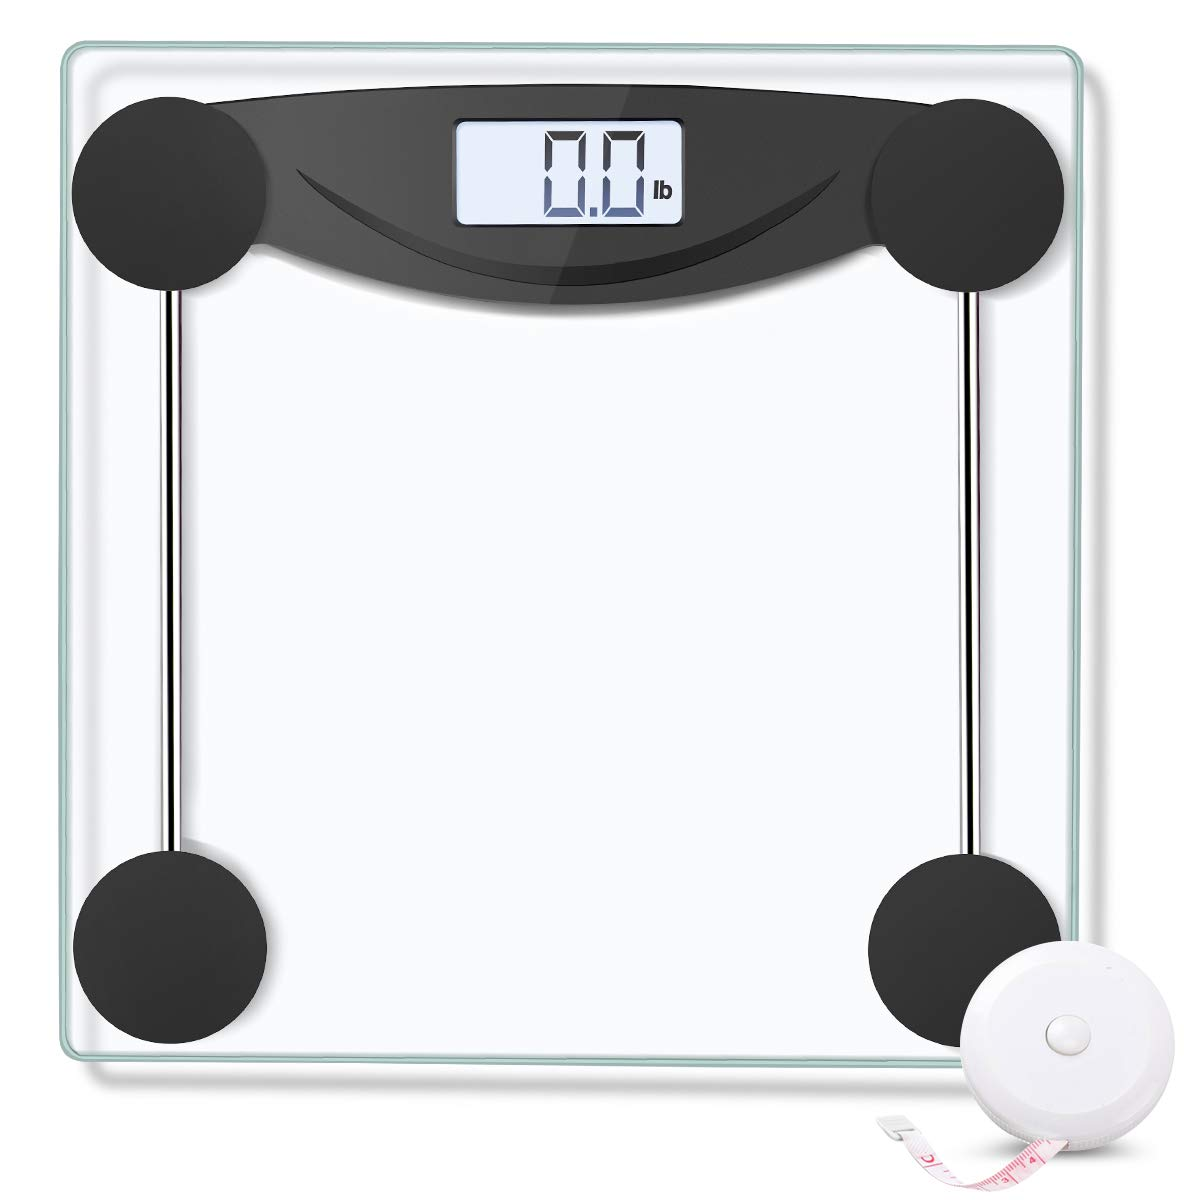 SUGOAL Digital Body Weight Bathroom Scale Weighing Scale with Body Tape Measure, Large Backlit LCD Display, Step-On Technology, Tempered Glass, 400 lb, Clear